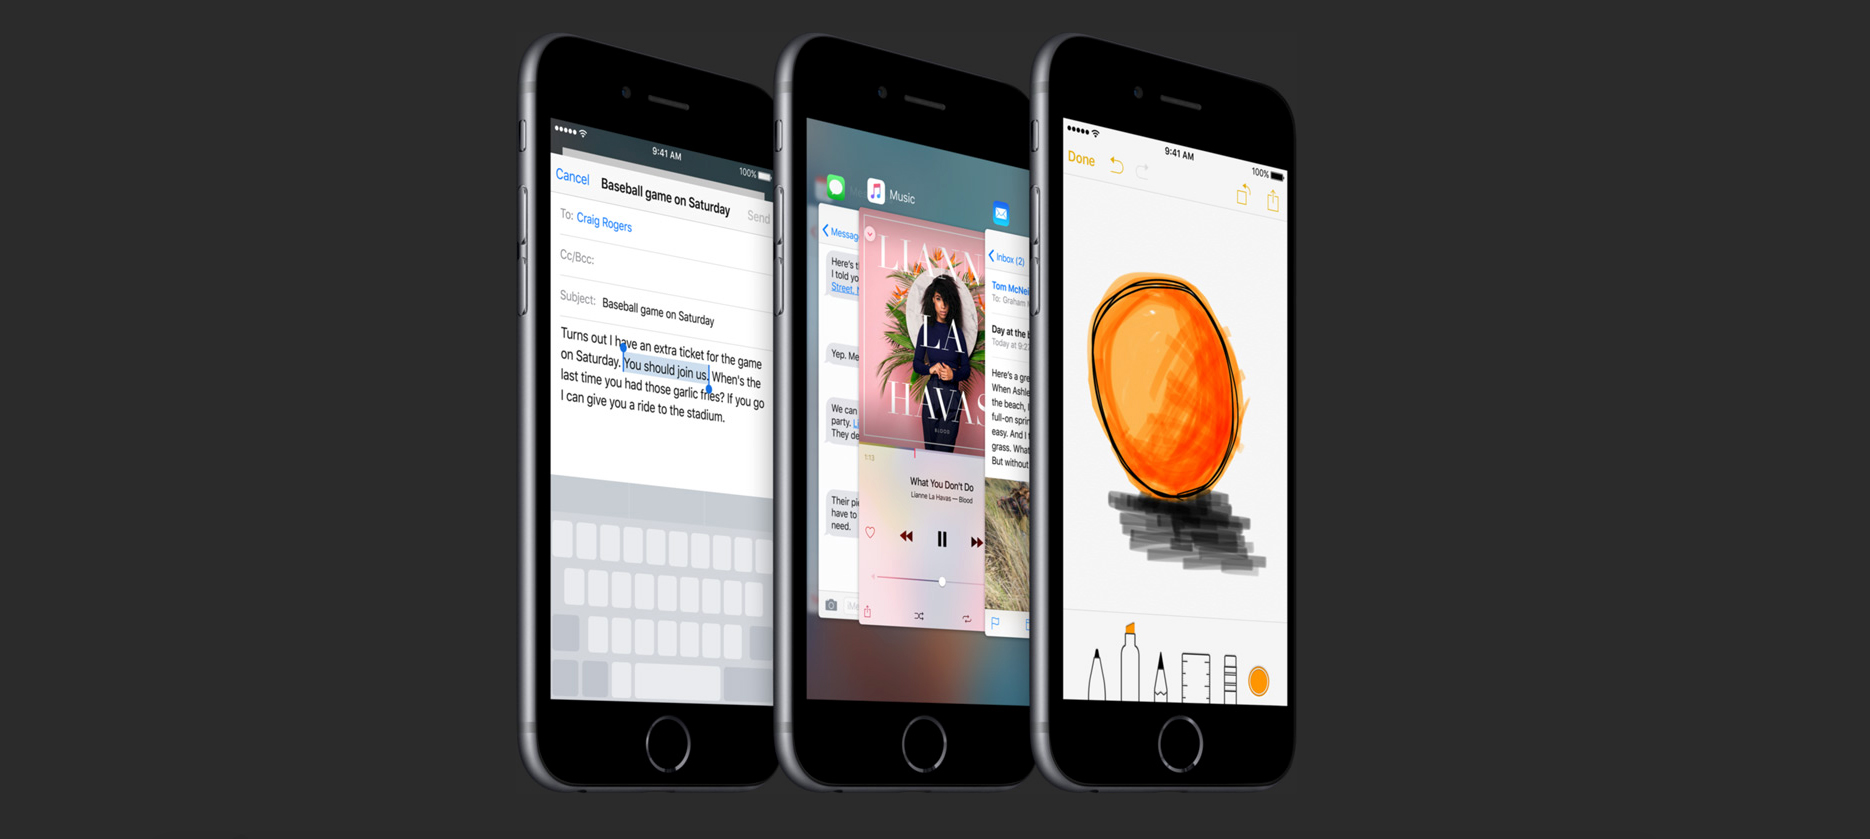 10 great 3d touch-enabled apps to try out on your new iphone 6s or